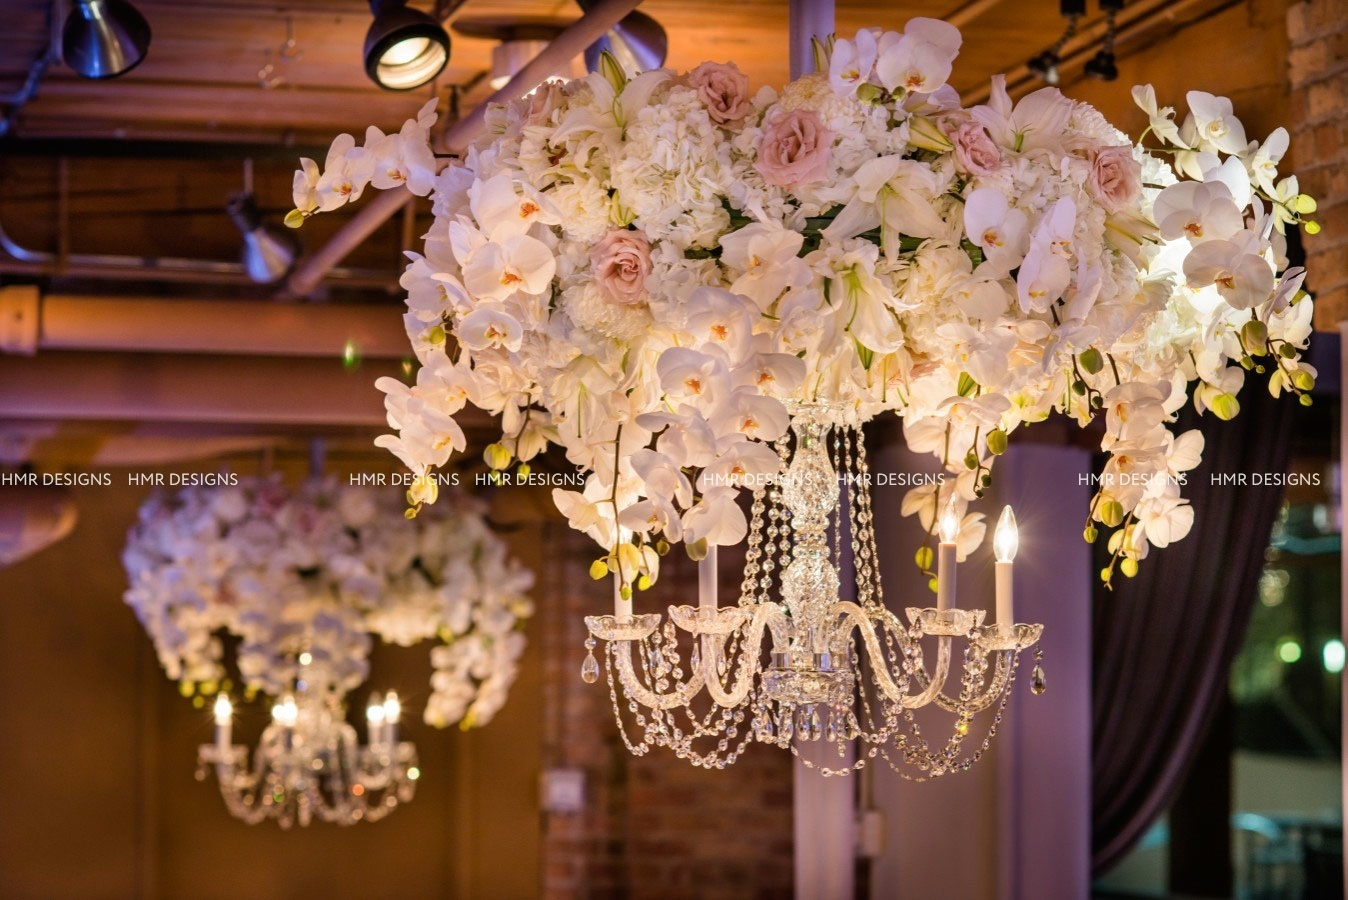 An orchid adorned chandelier at River East Arts Center by HMR Designs